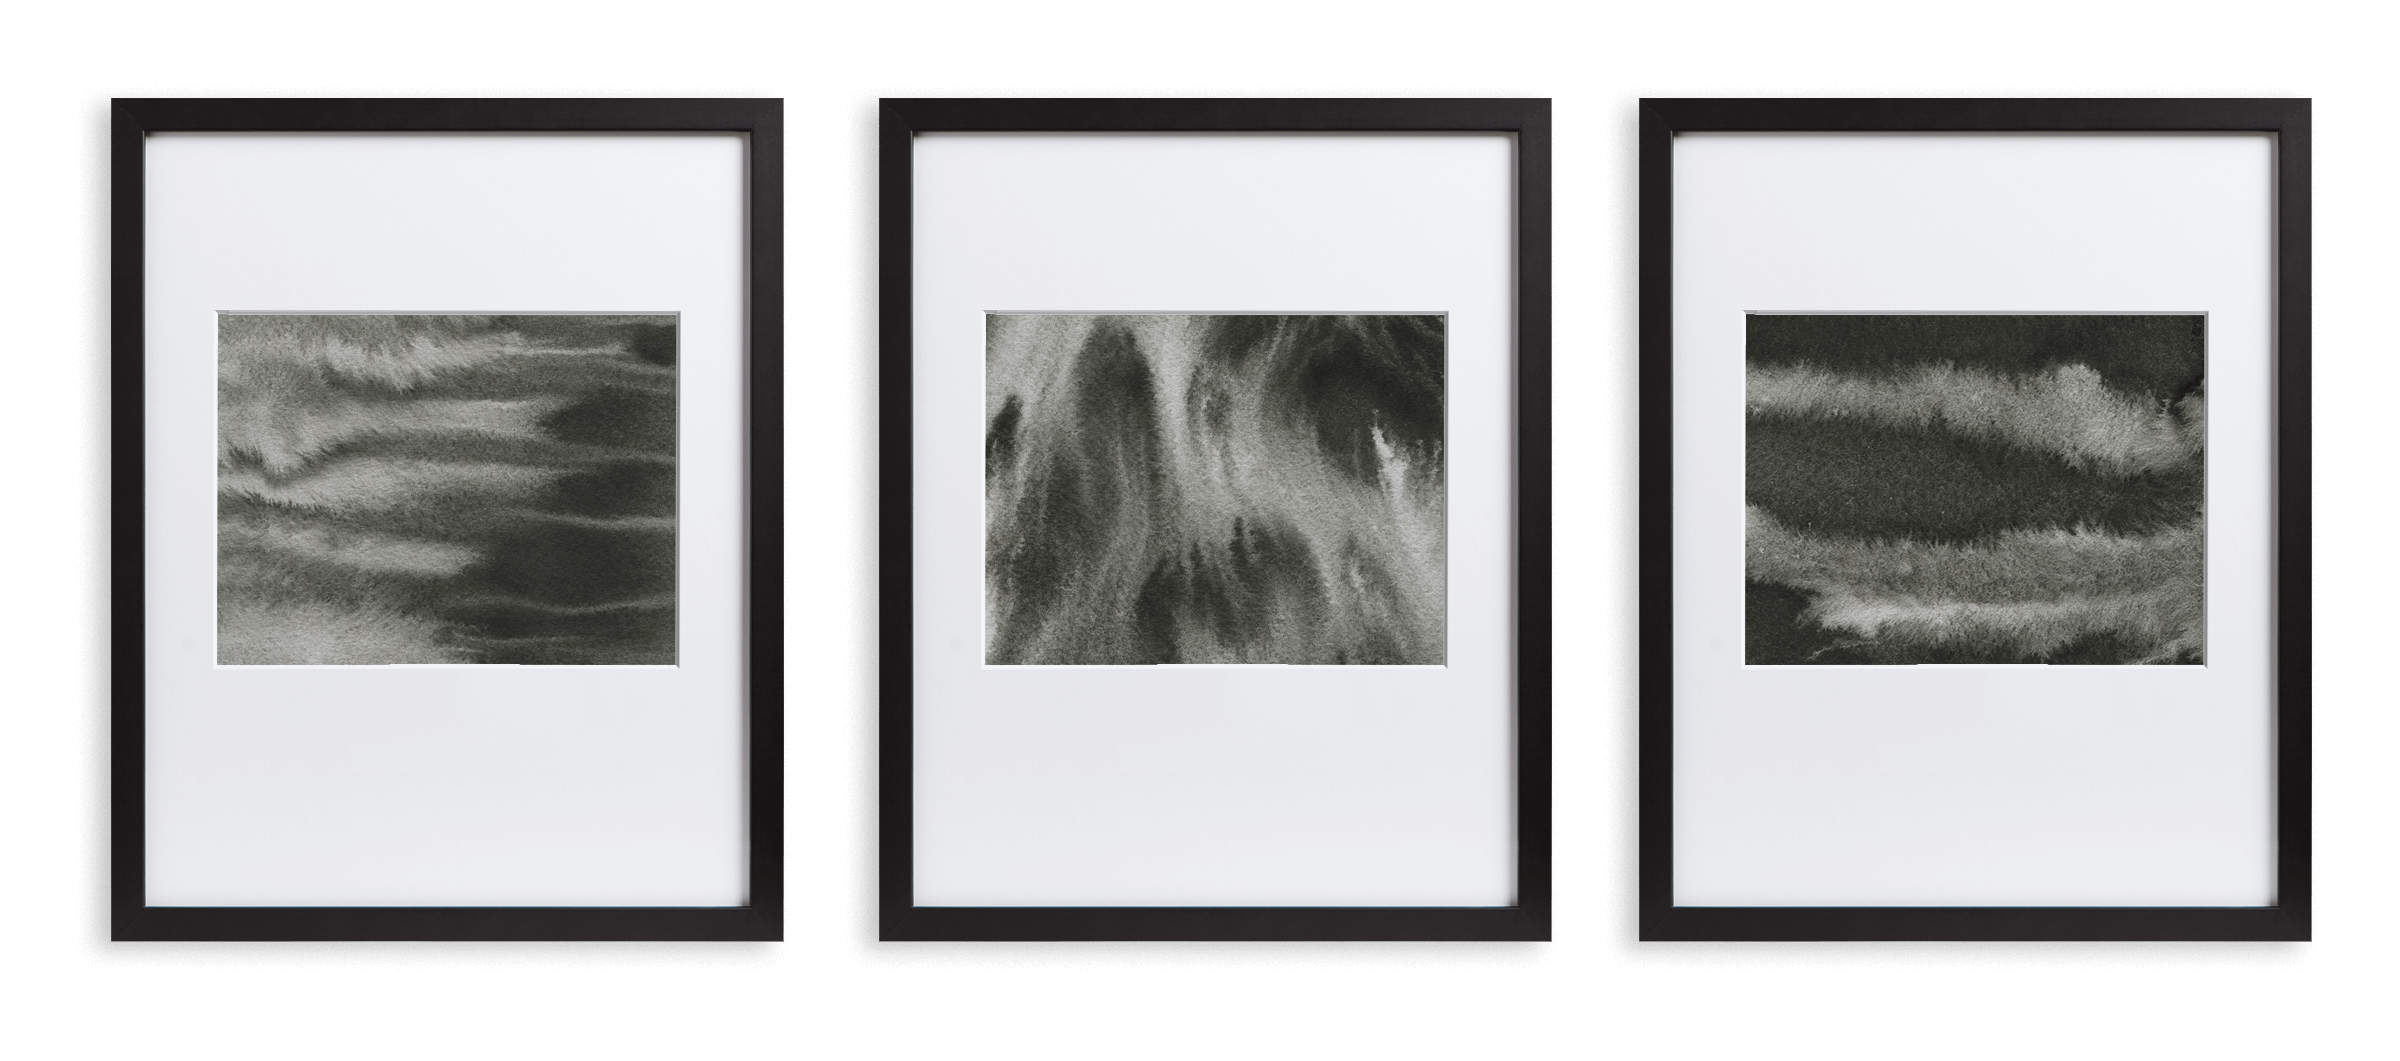 3 black frames with minimal drawings of cacti, houses, and greenery in black and white